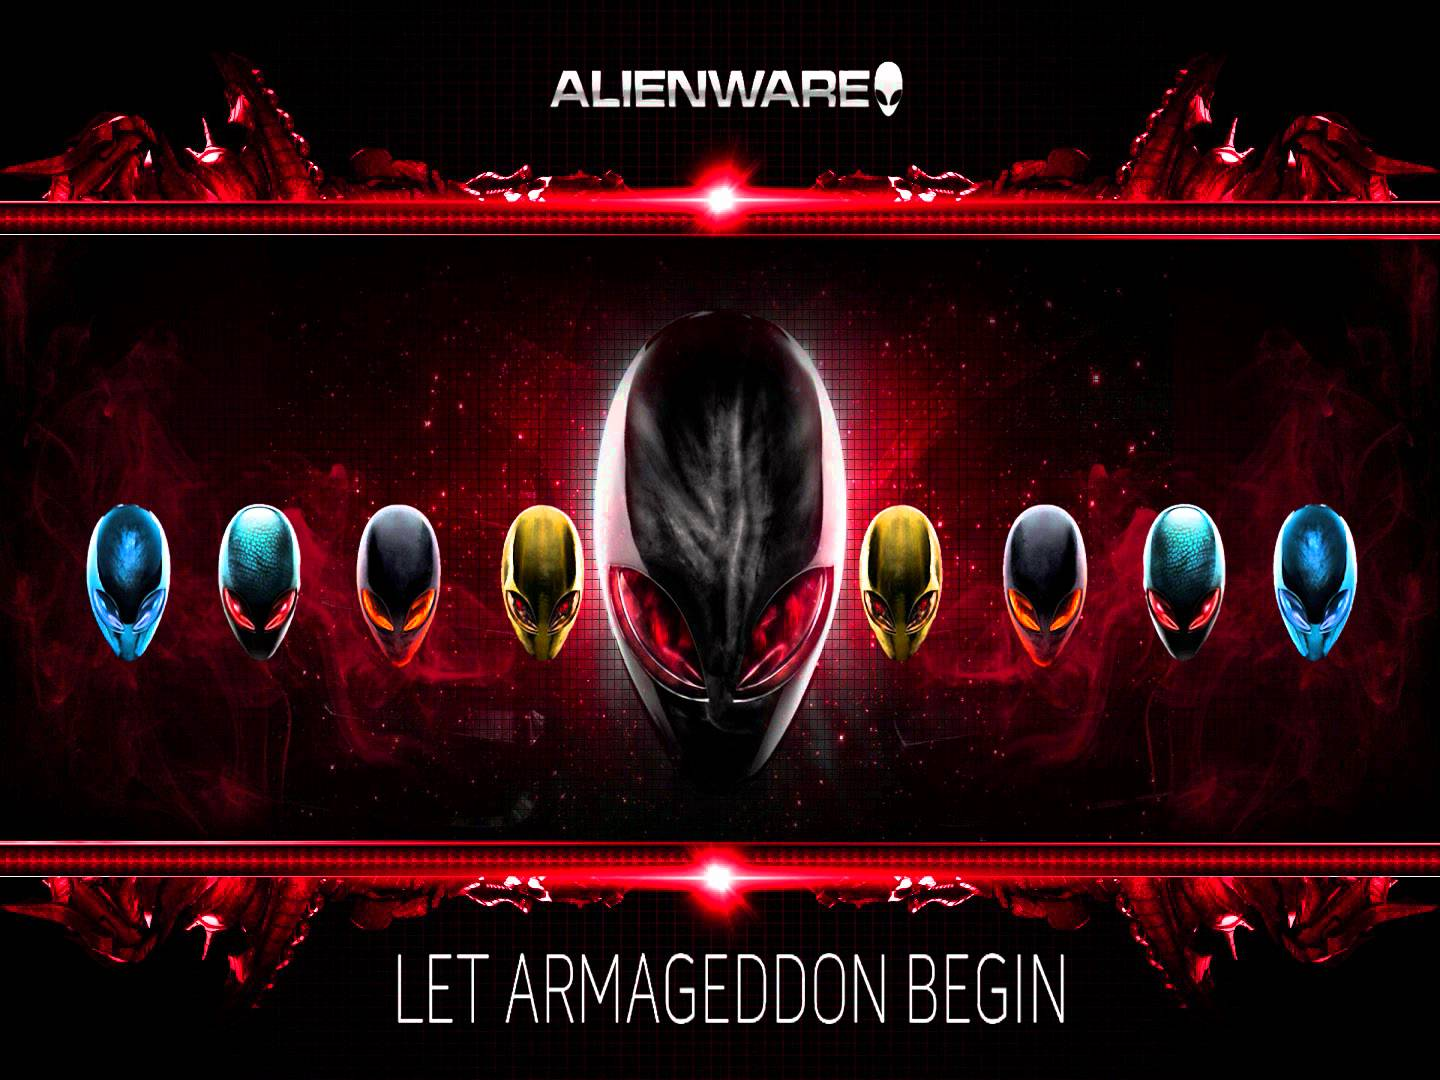 Get Alienware Wallpaper 4K Red PNG